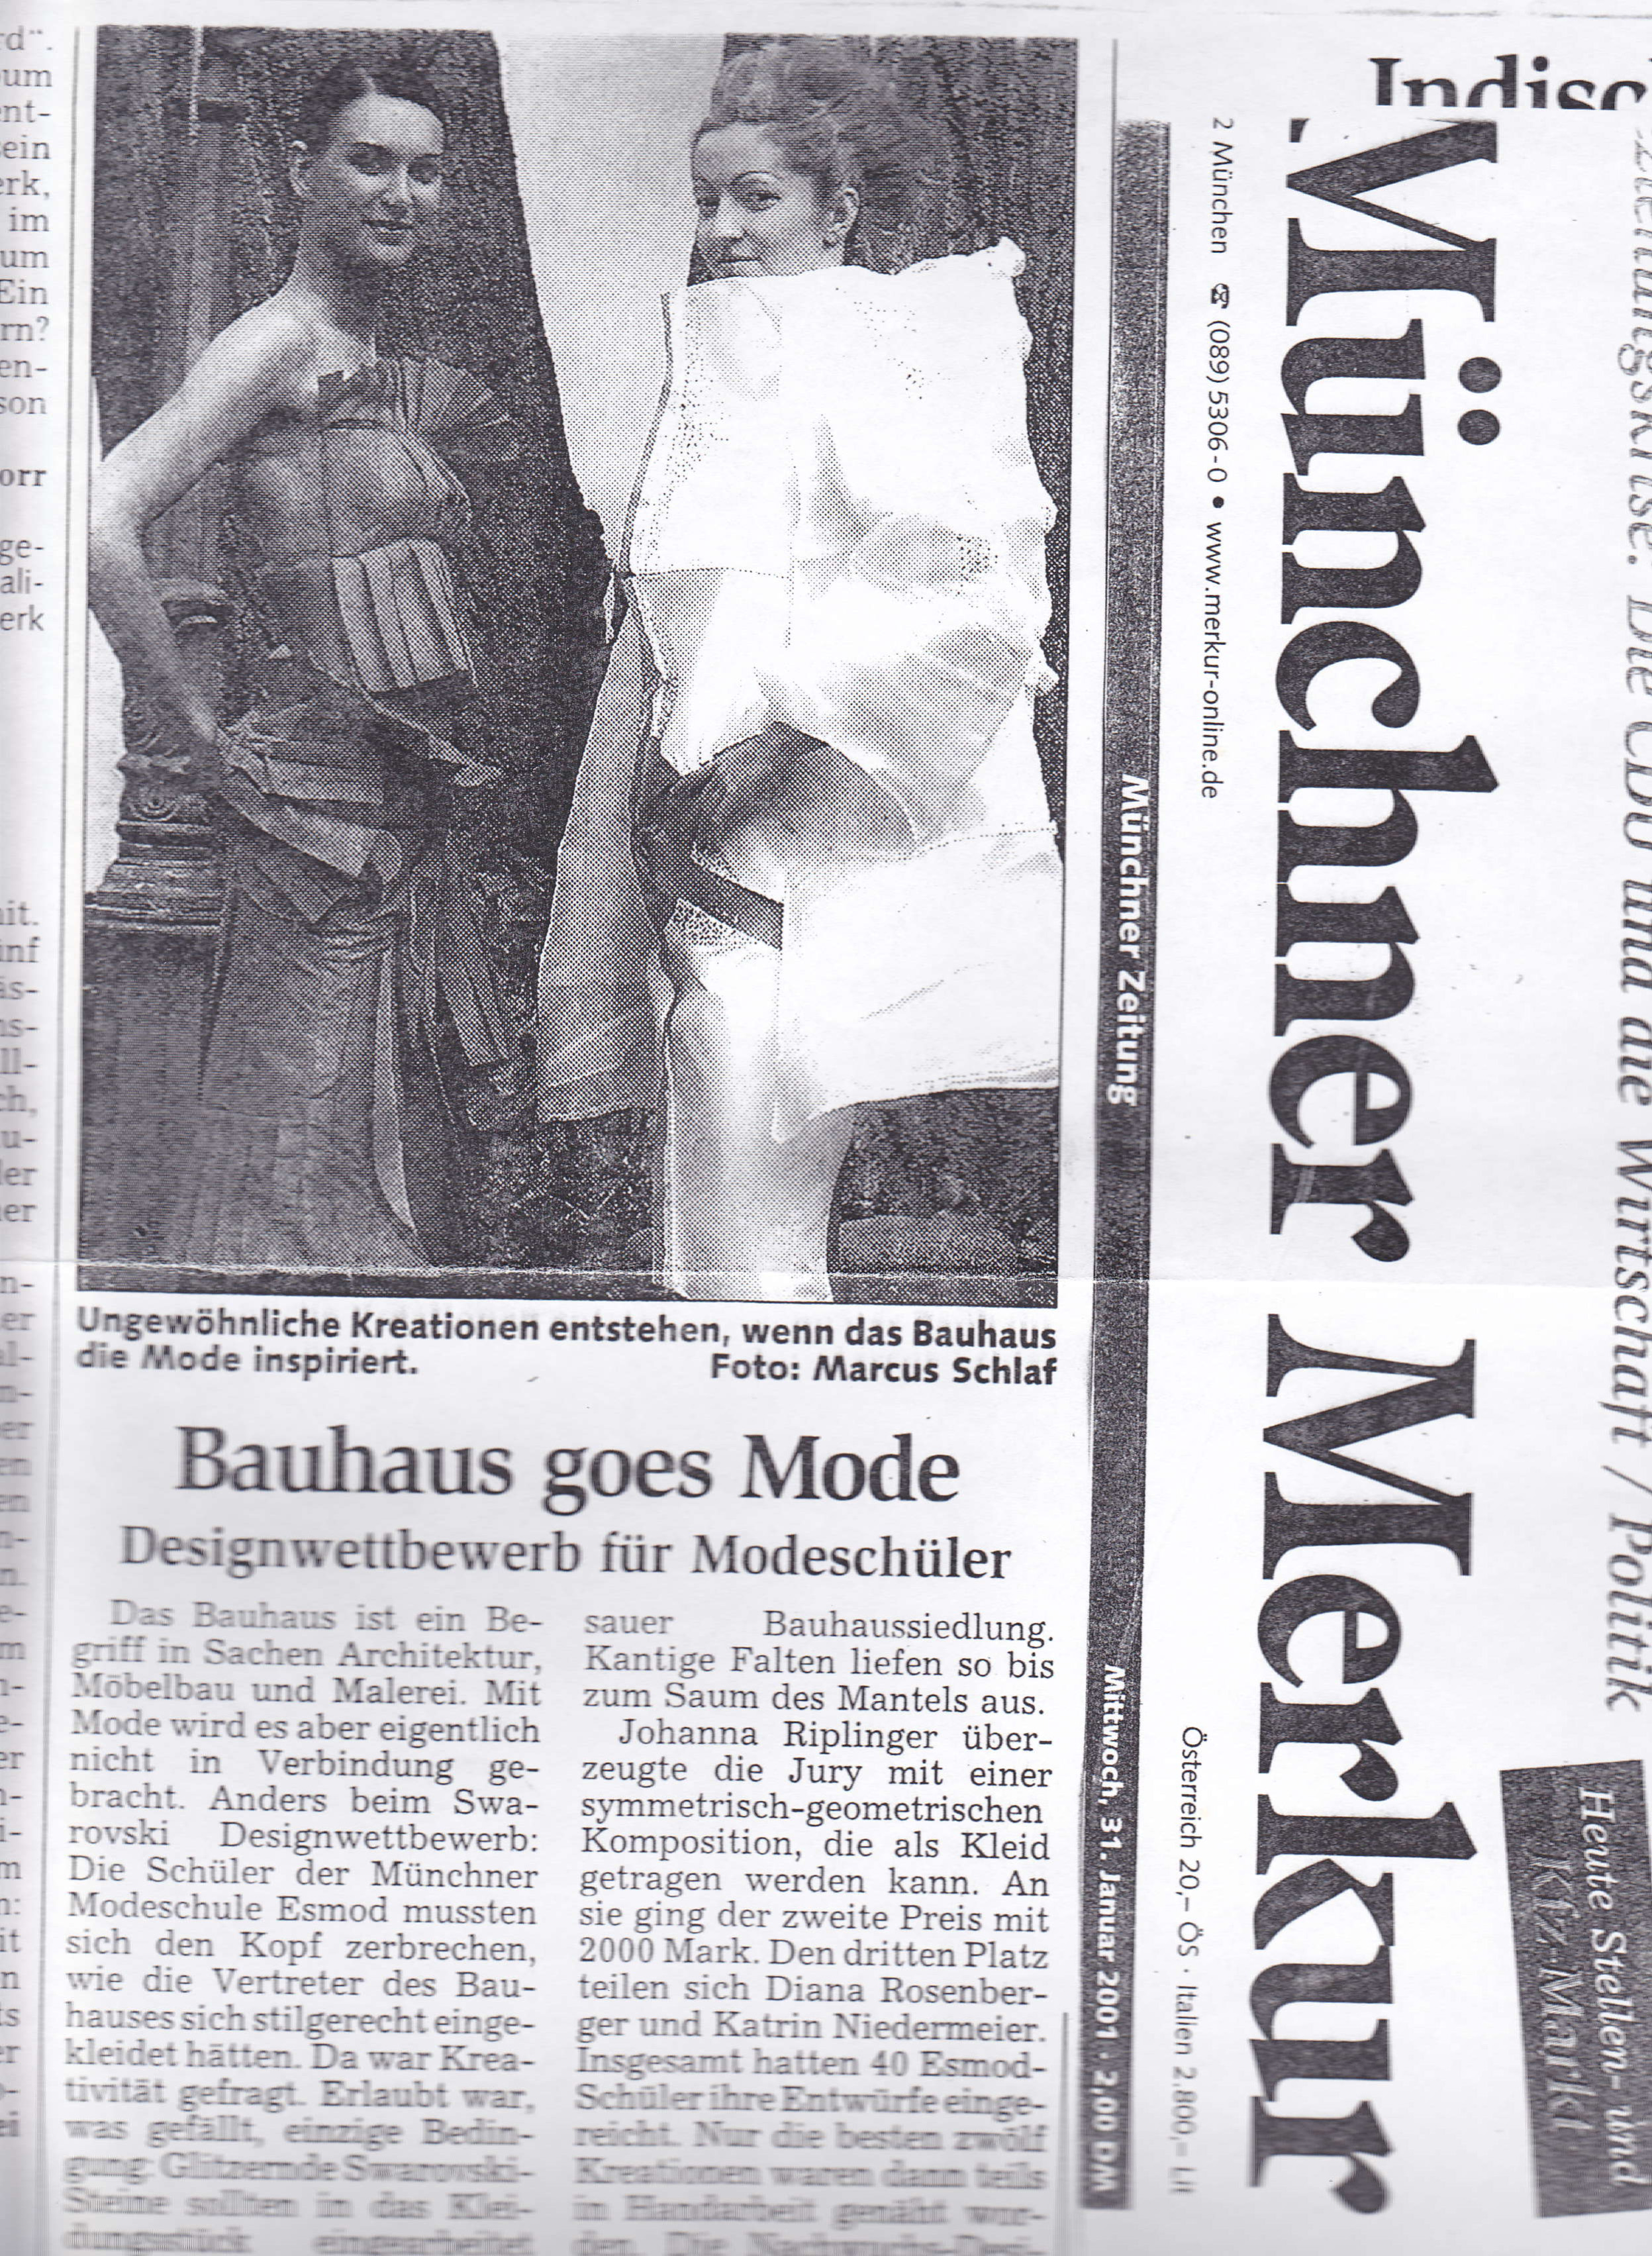 Newspaper article showing my dress